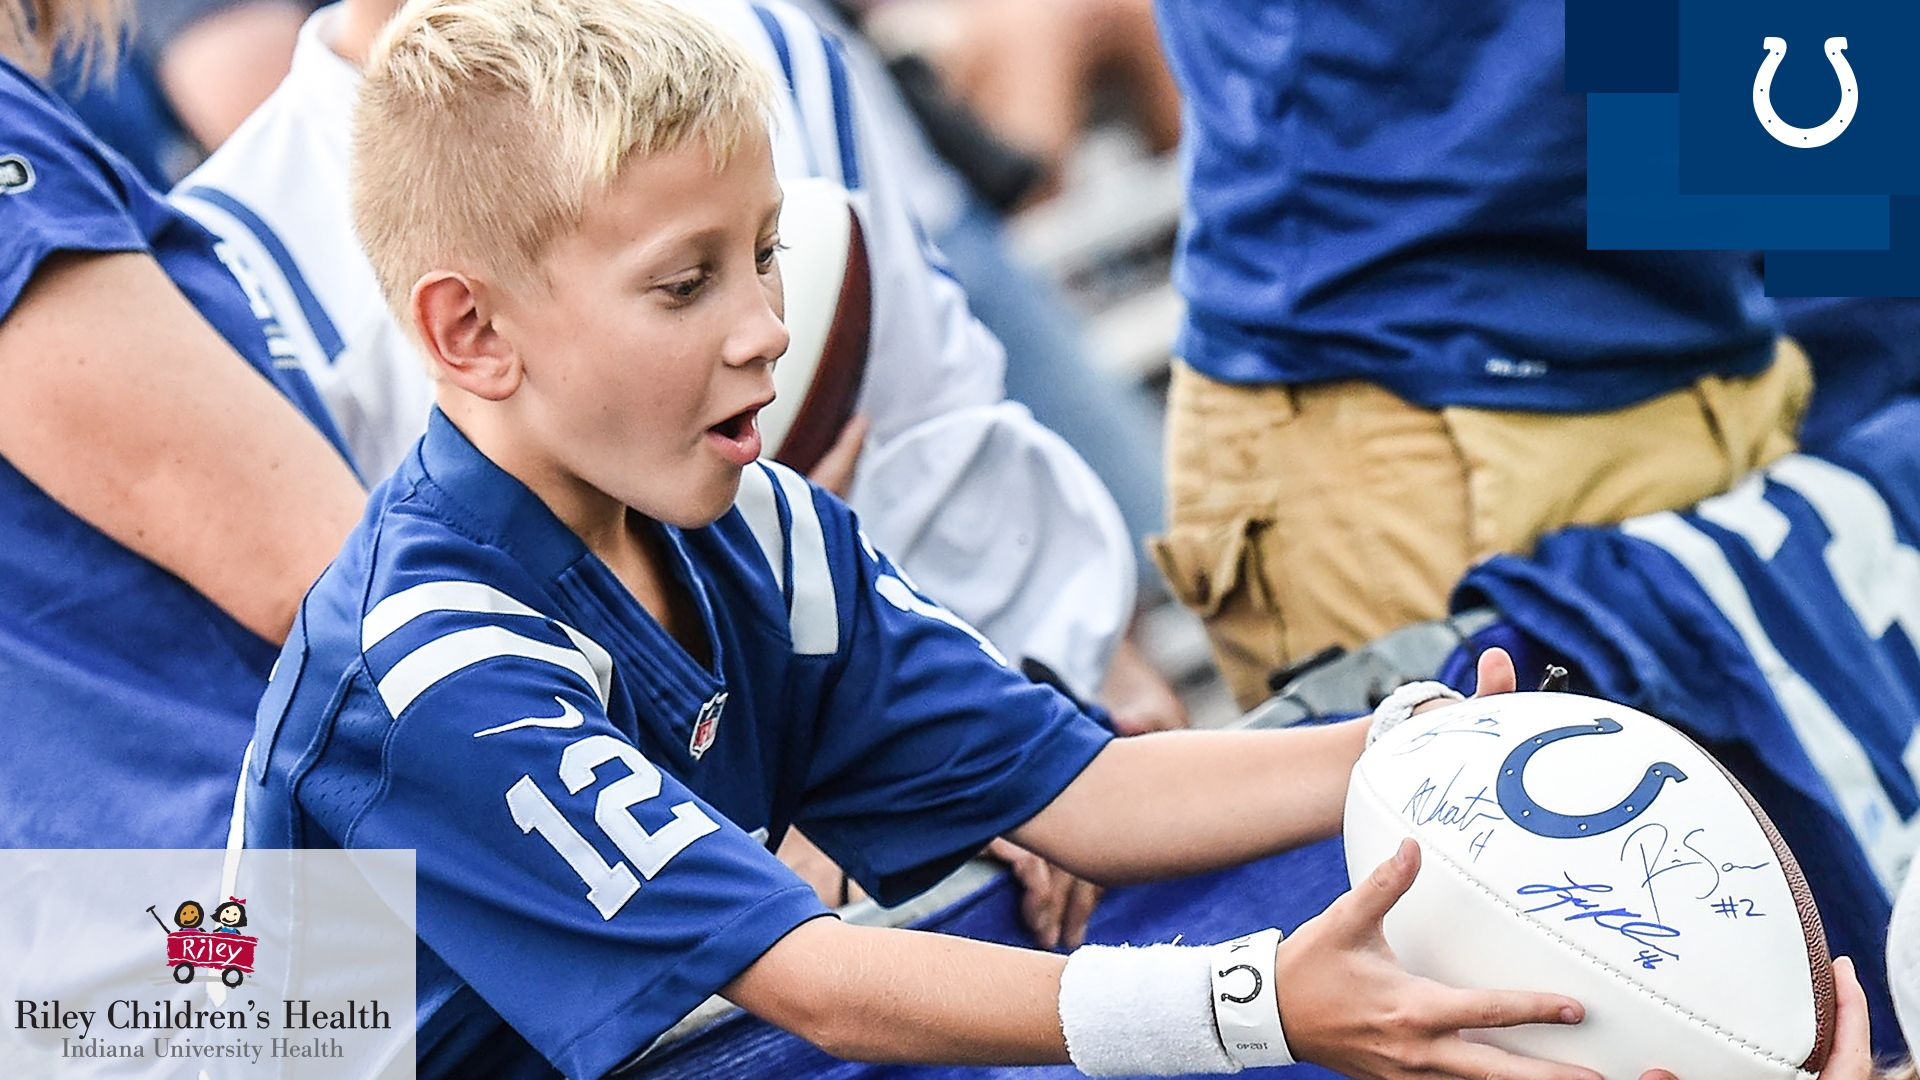 Its time to confirm your membership for 2021  Renew by February 28 and receive these great benefits:  *   2,500 Colts Loyalty points *   Ability to choose one of our extended payment plans *   Access to additional events or prizes via Loop and Tie *   Your choice of one of these three benefits:  Better Together: $25 in concession credit, valid for the 2021 season  Bleed Blue: A customized commemorative 2021 season ticket, as well as an entry to win a spot in one of three season ticket member trips to watch the Colts on the road in 2021  Business In Blue: Exclusive Colts season ticket member portfolio plus a complimentary membership to the Colts Business Connection  *Please note: On February 28th, these benefits will expire!